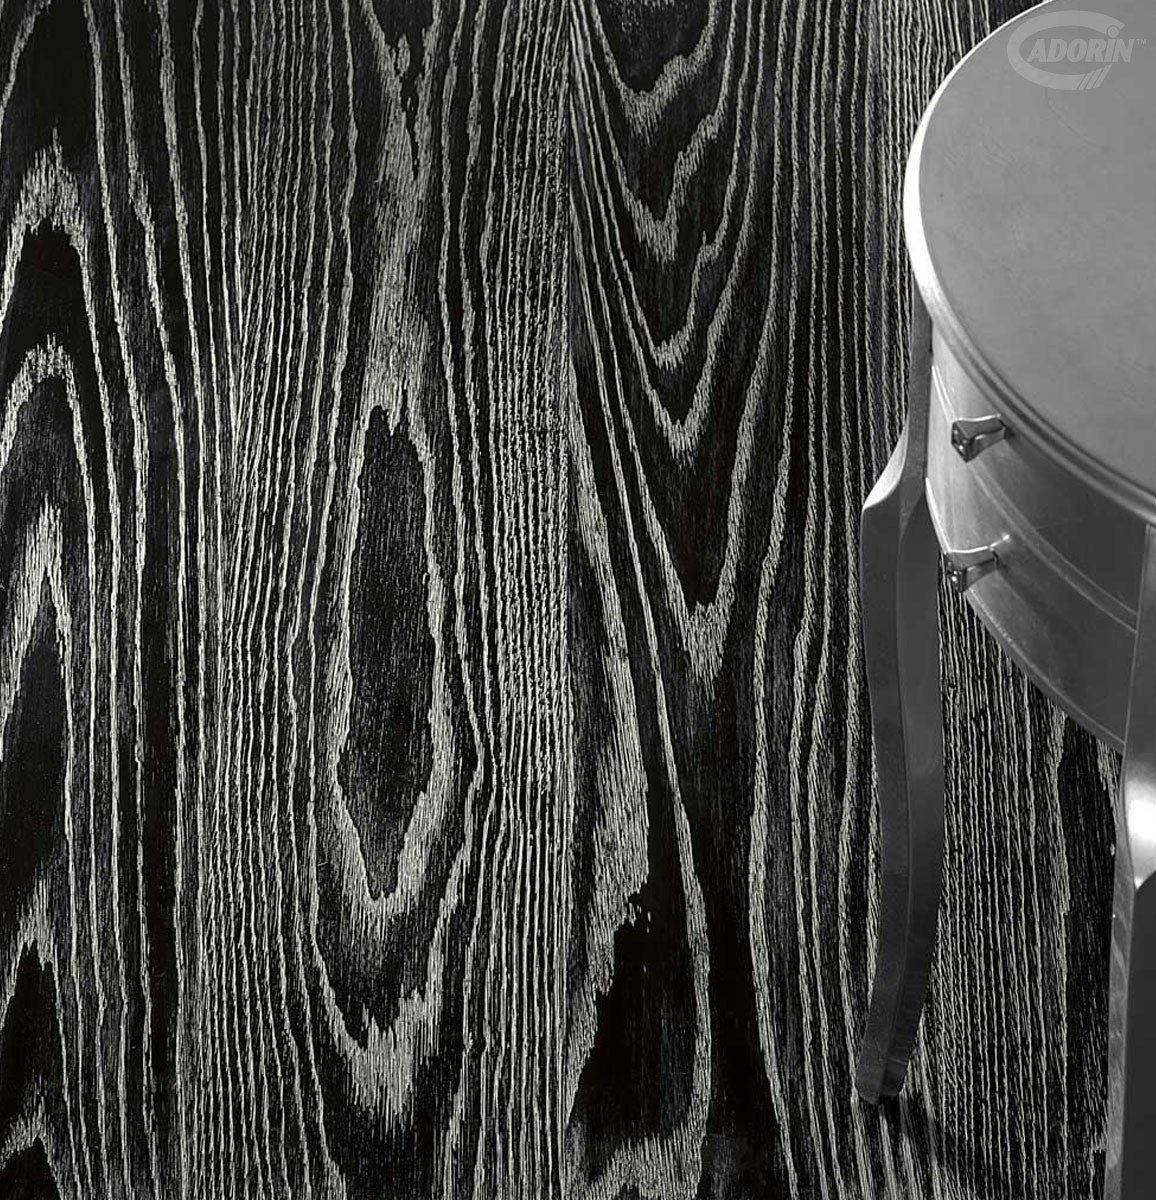 SILVER Leaf - black background - Brushed Oak